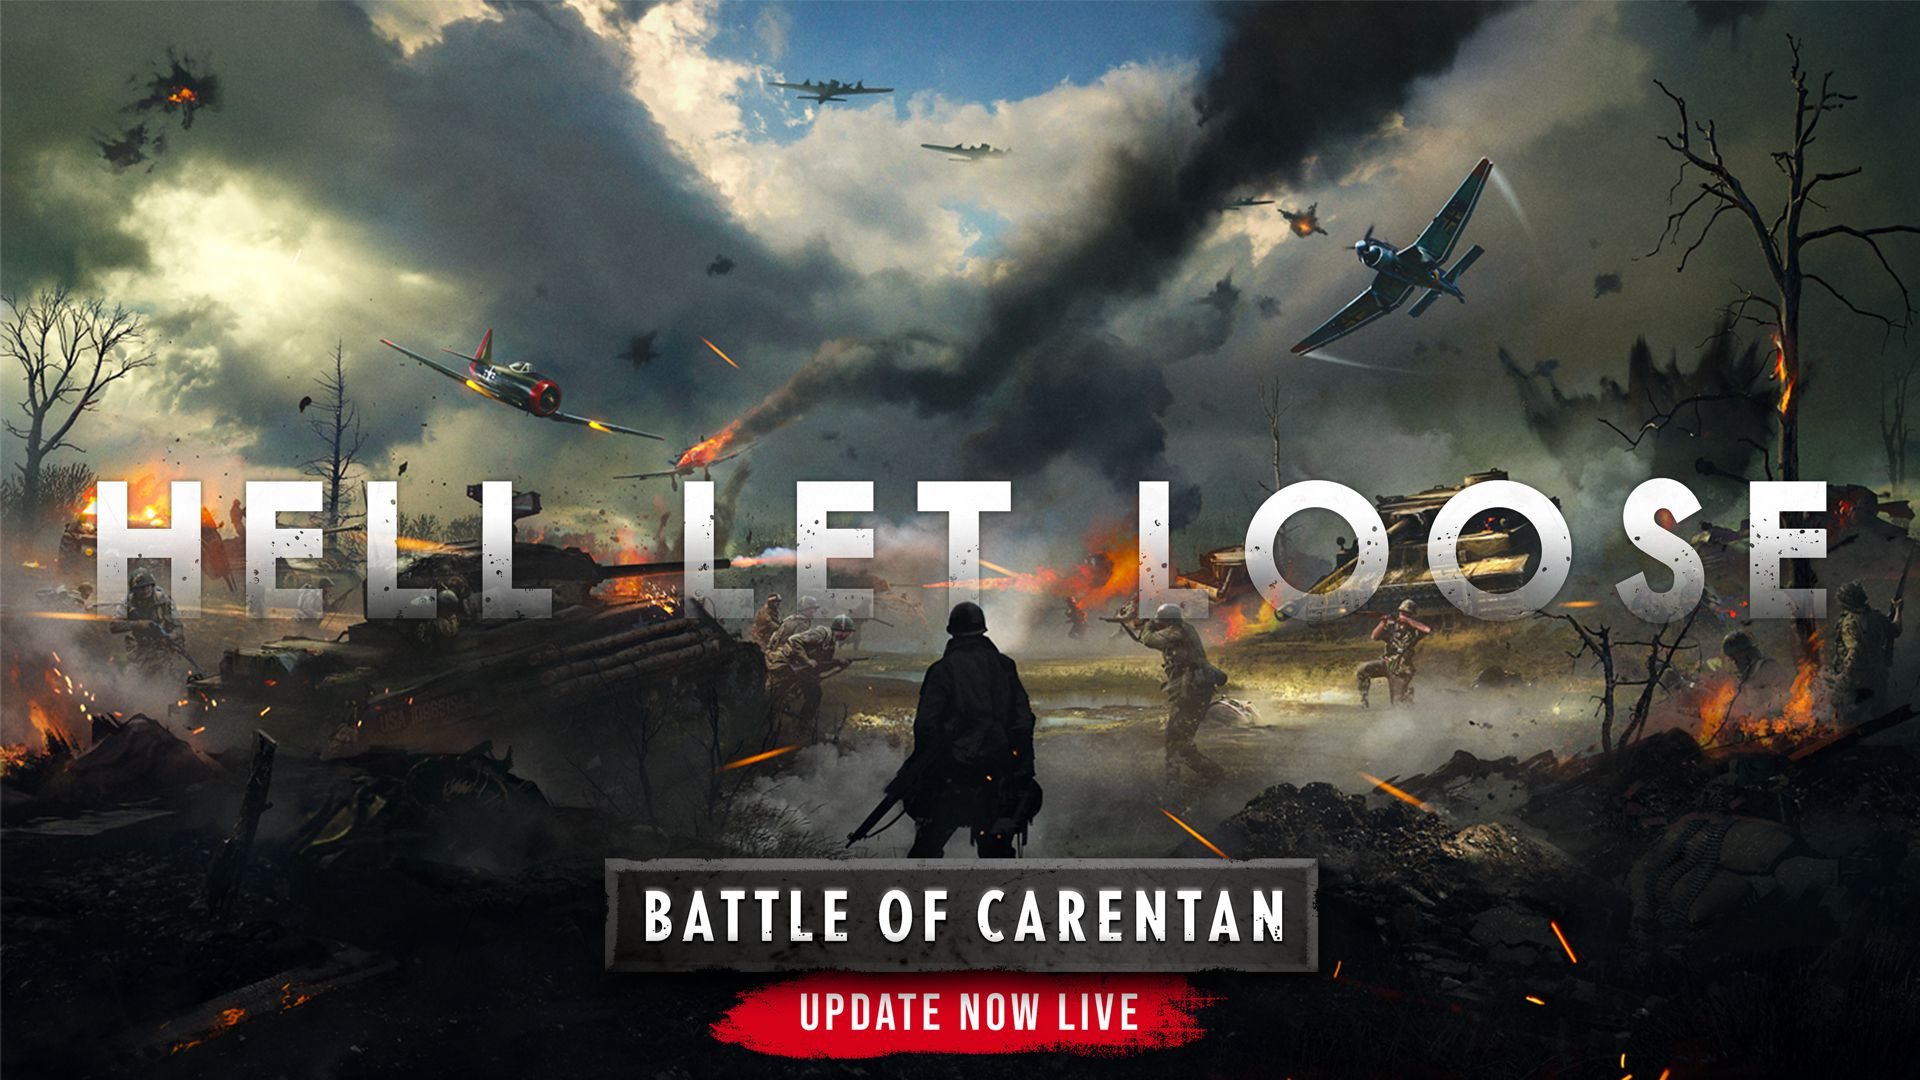 Hell Let Loose - Battle of Carentan